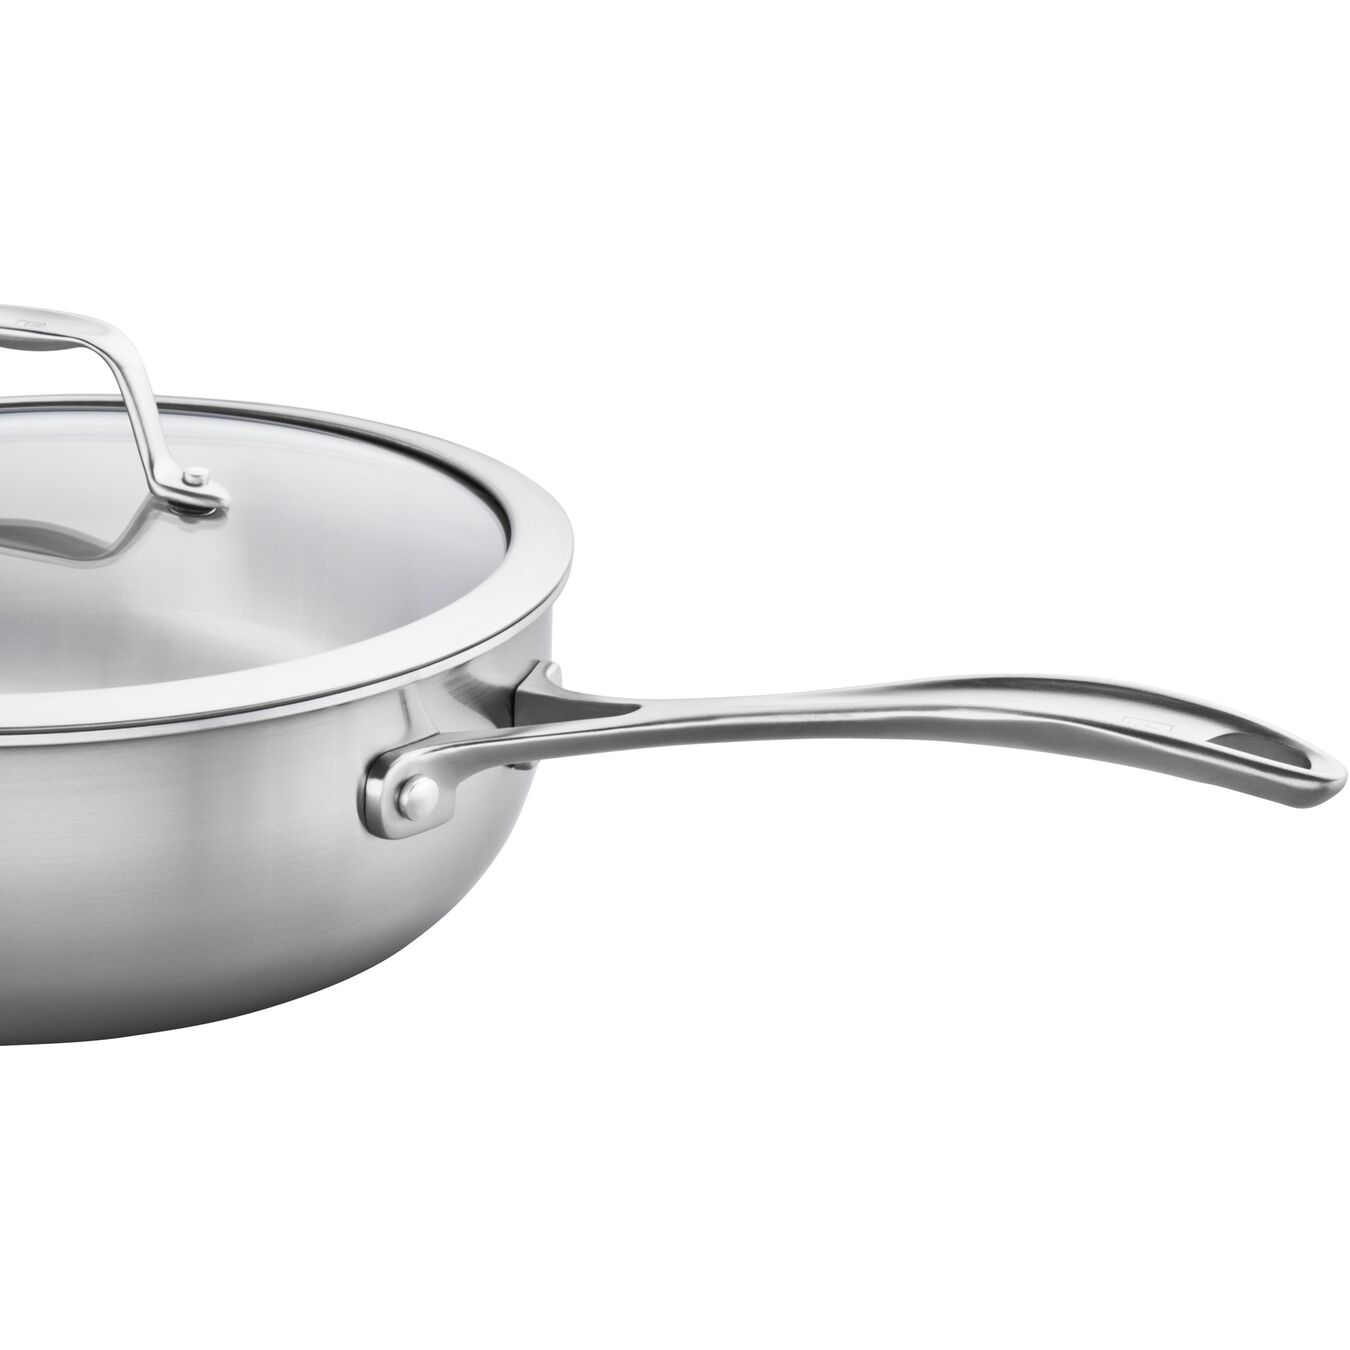 10-inch, 18/10 Stainless Steel, Non-stick, Saute pan,,large 4